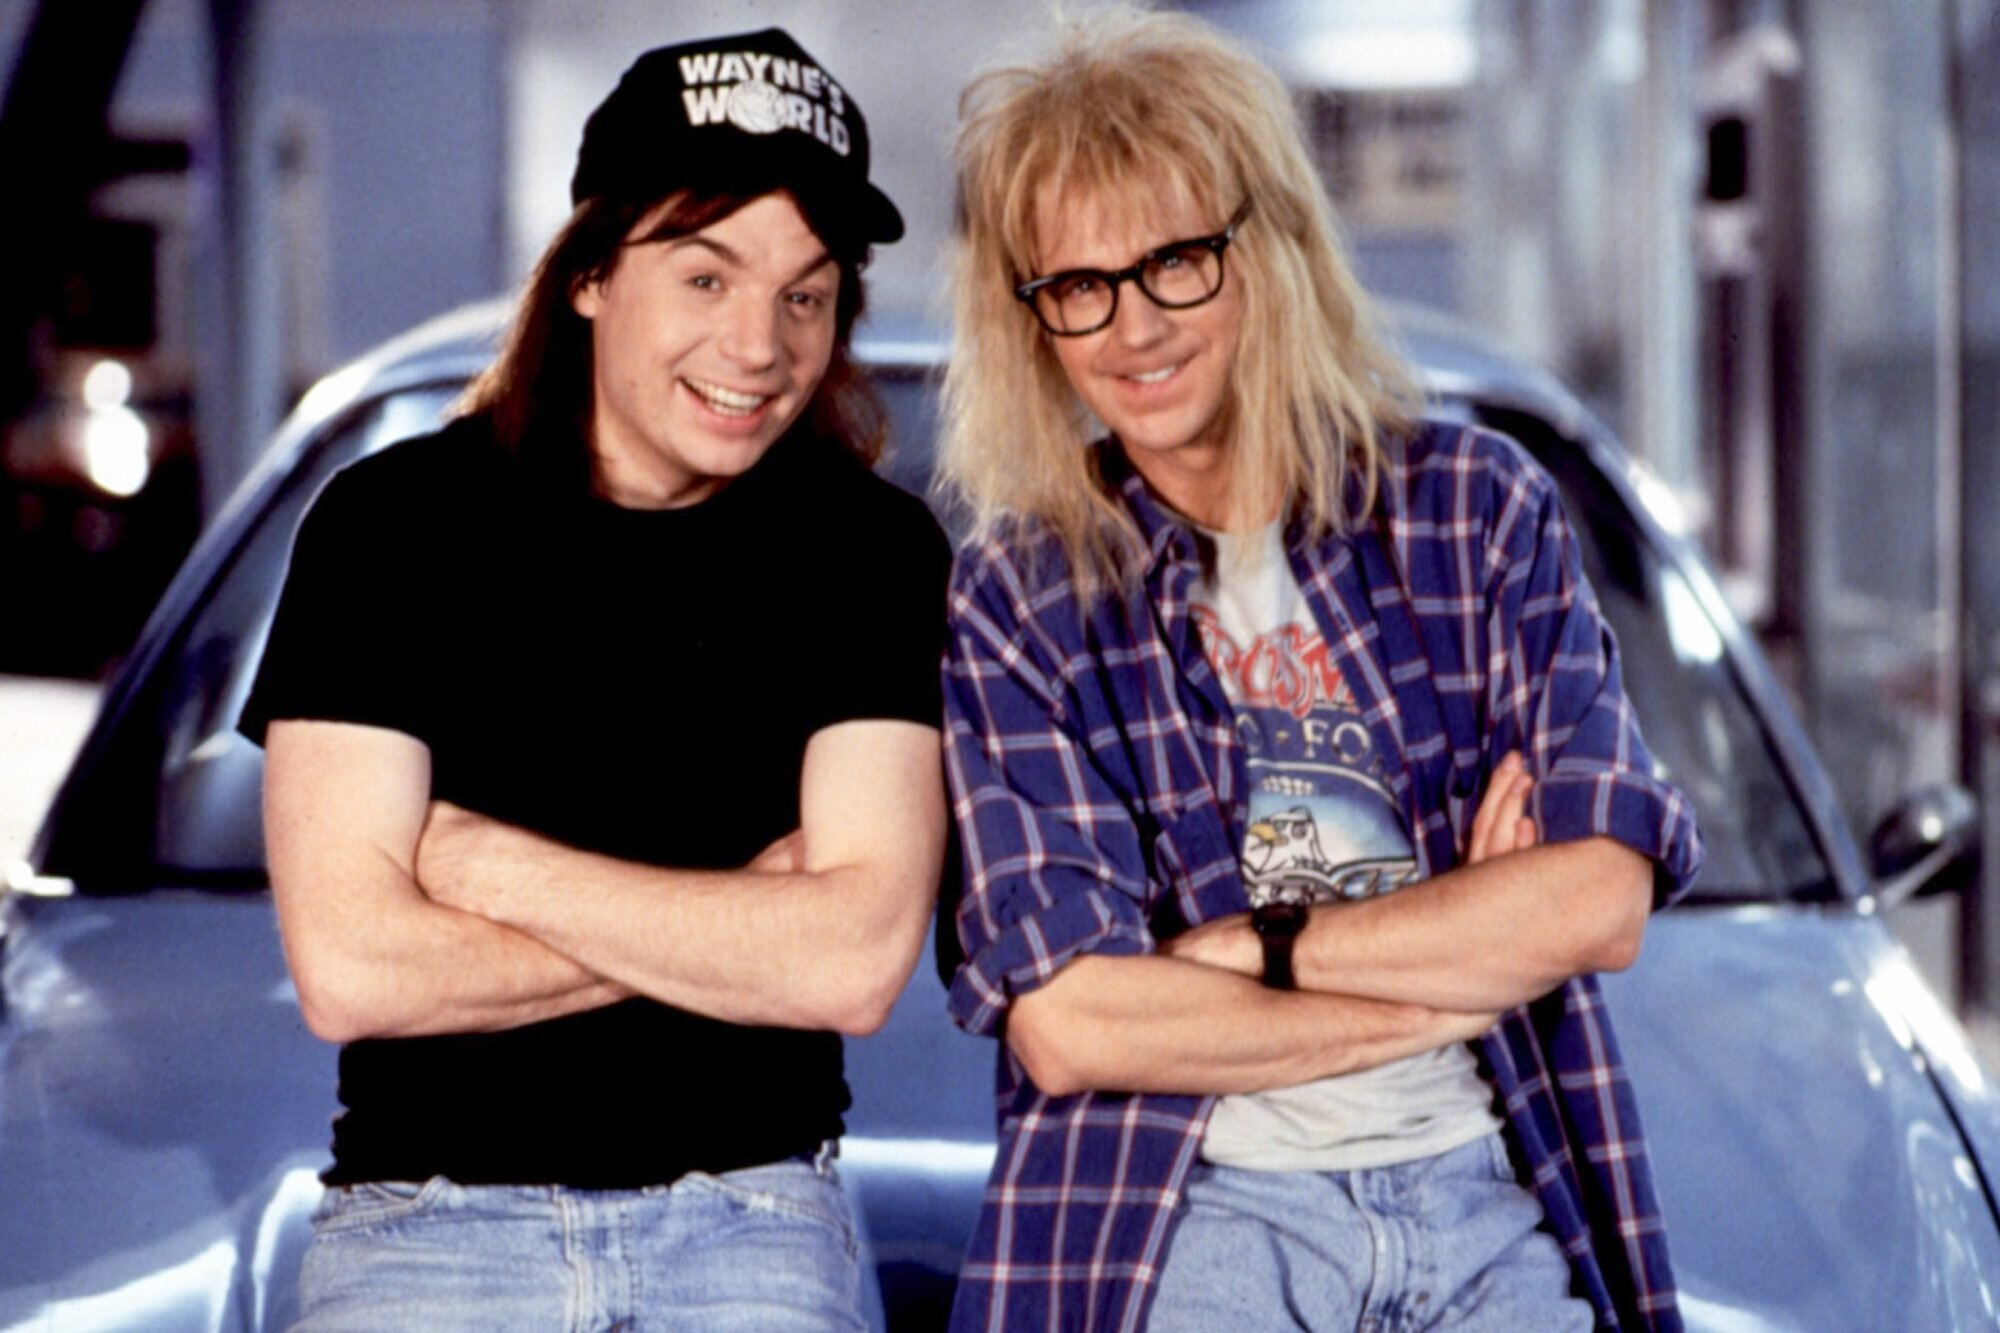 Wayne's World quiz: How well do you know the movie? | EW.com